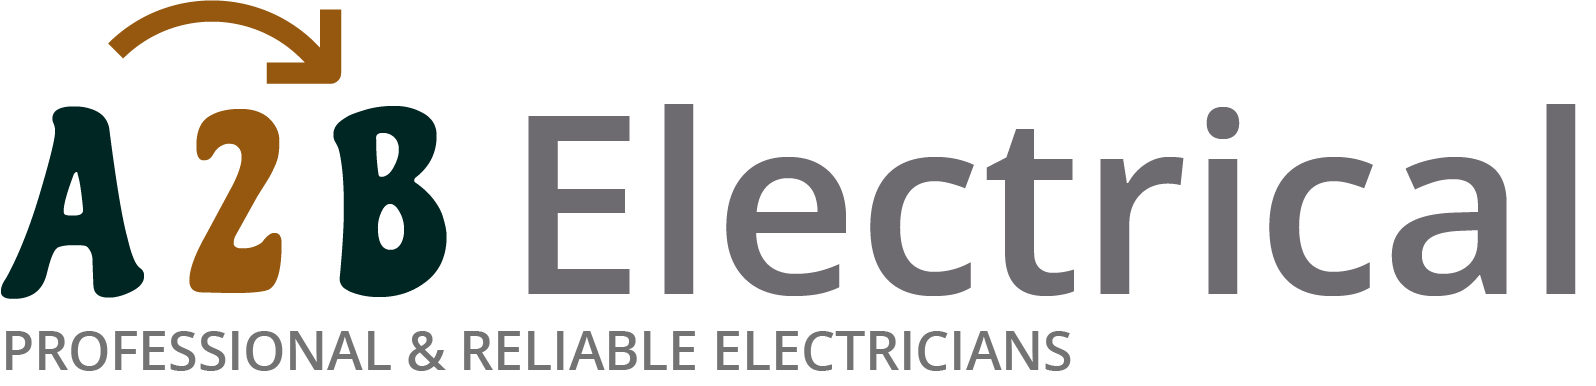 If you have electrical wiring problems in Highgate, we can provide an electrician to have a look for you.